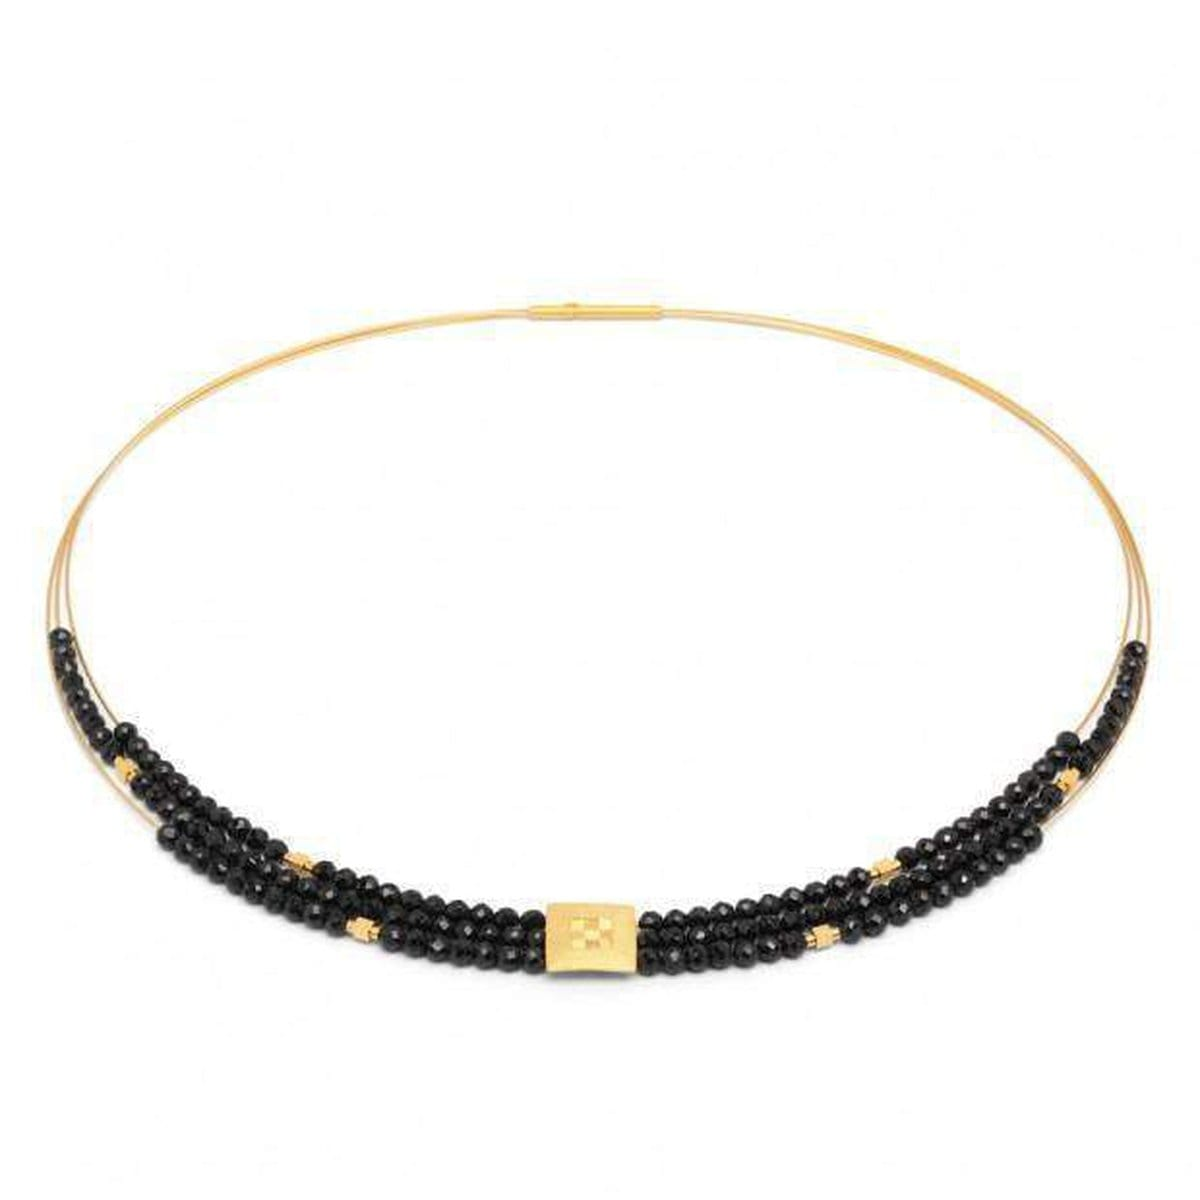 Efinia Black Spinel Necklace - 85090496-Bernd Wolf-Renee Taylor Gallery